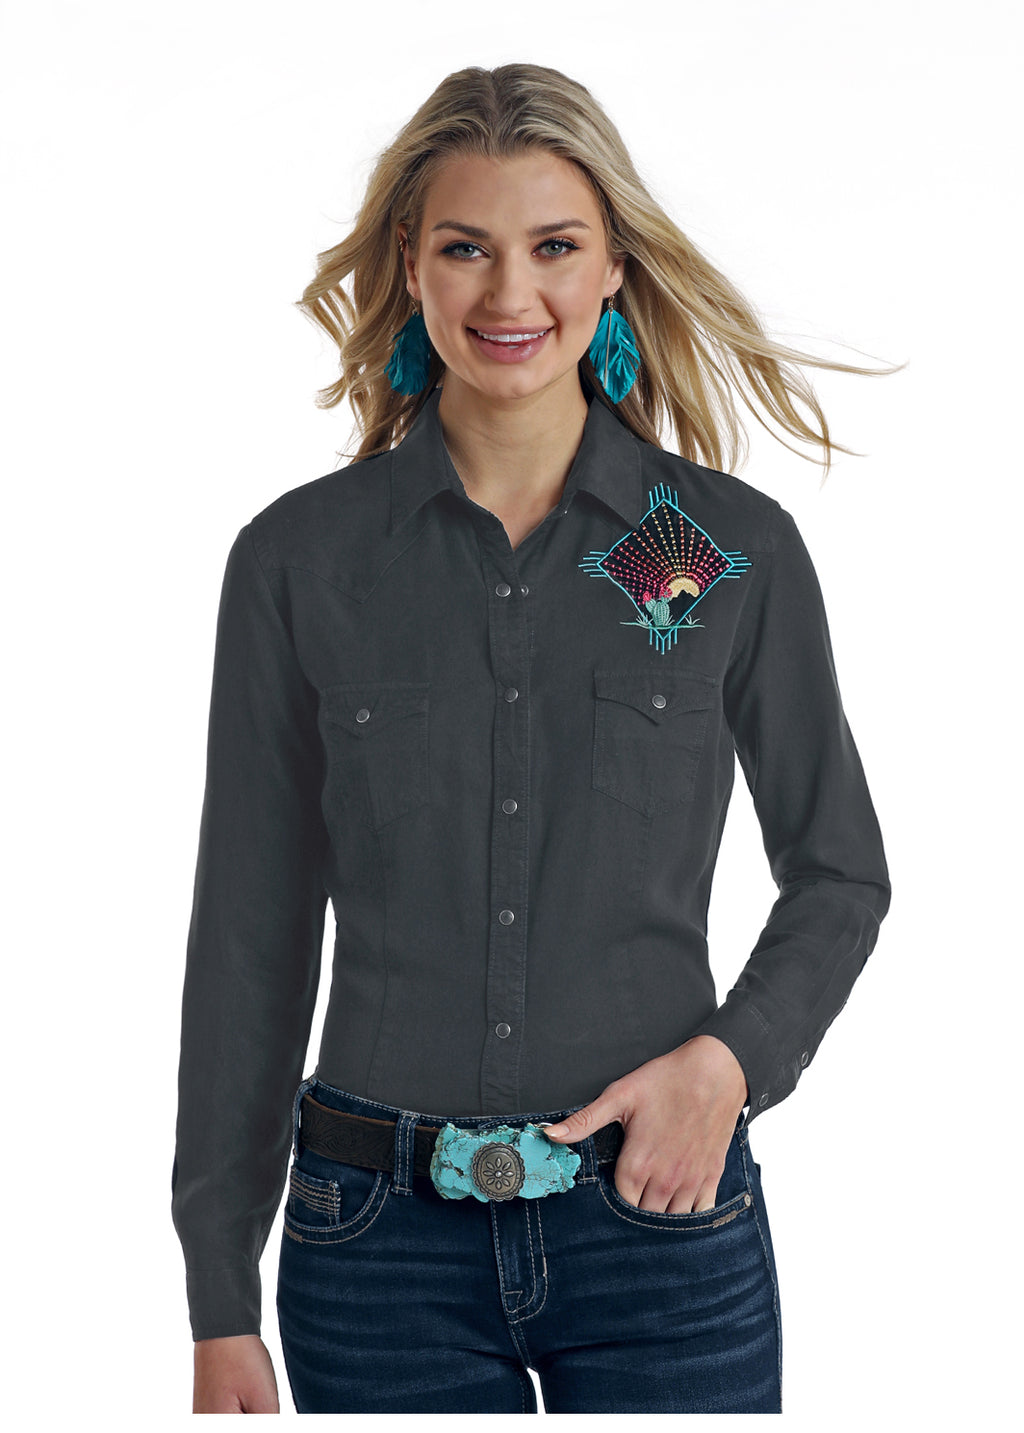 Panhandle Long Sleeved Shirt (R4S6387)